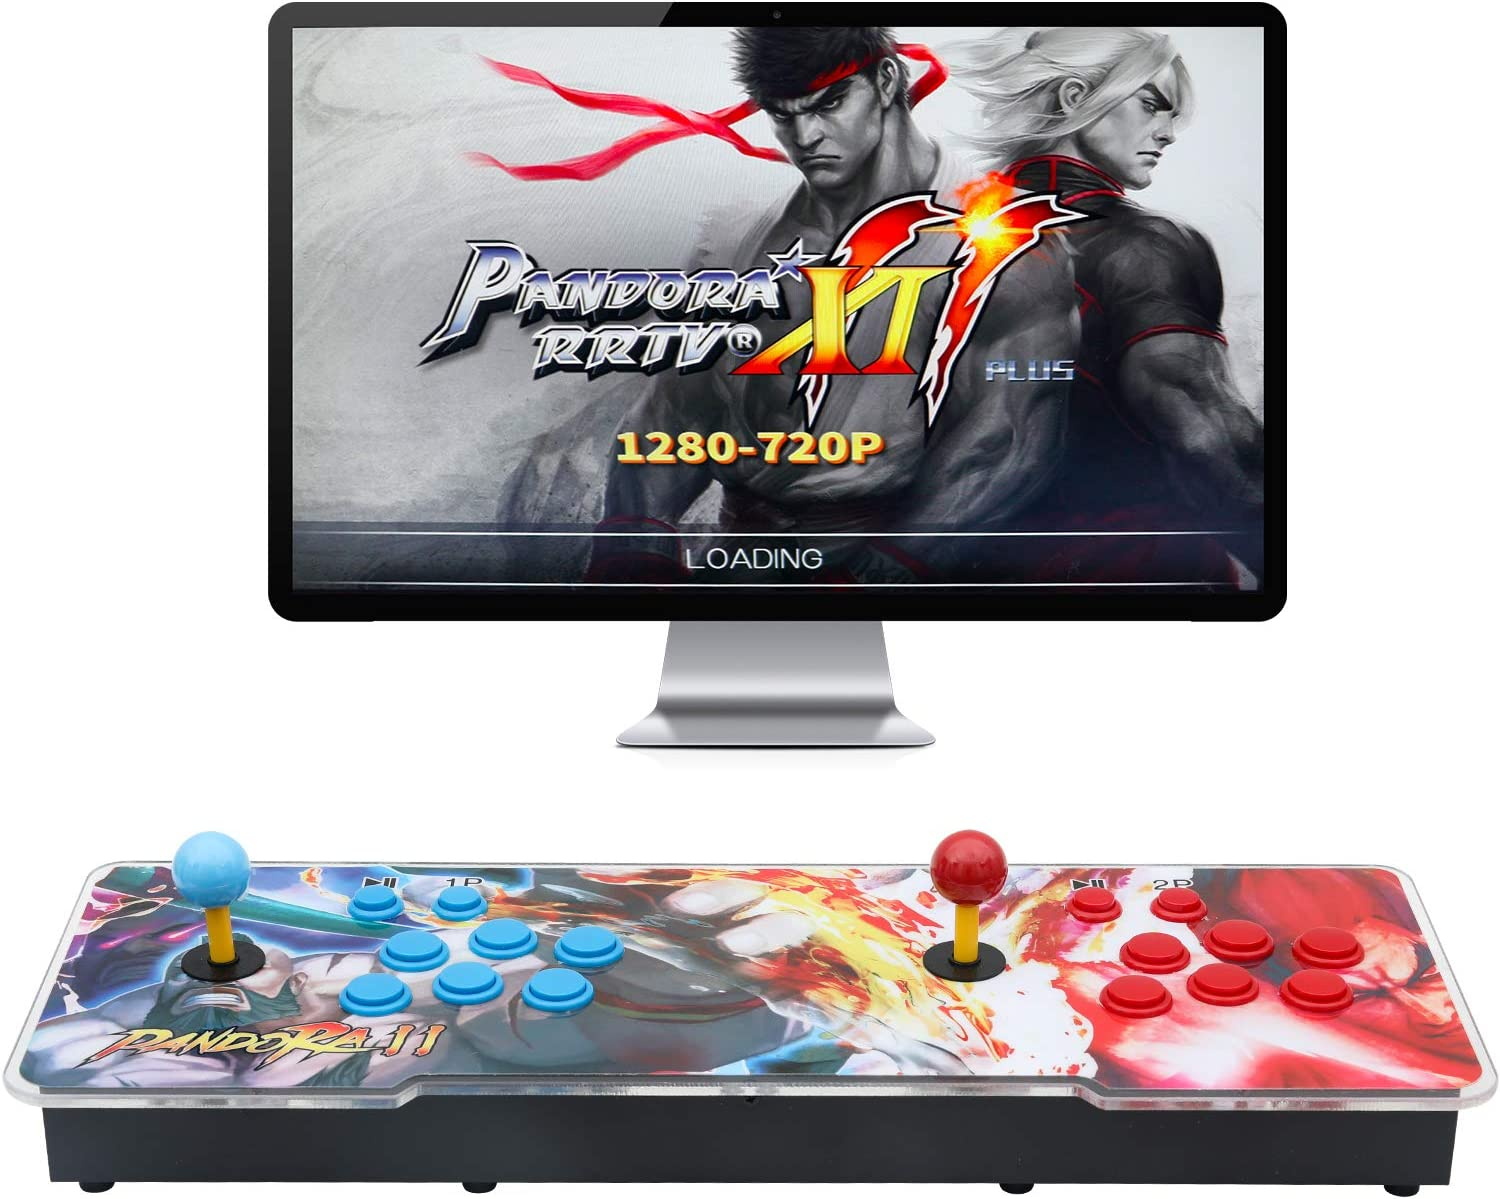 【3003 Games in 1】 Arcade Game Console ,Pandora Treasure 3D Double Stick,3003 Classic Arcade Game,Search Games, Support 3D Games,Favorite List, 4 Players Online Game,1280X720 Full HD Video Game (Red)